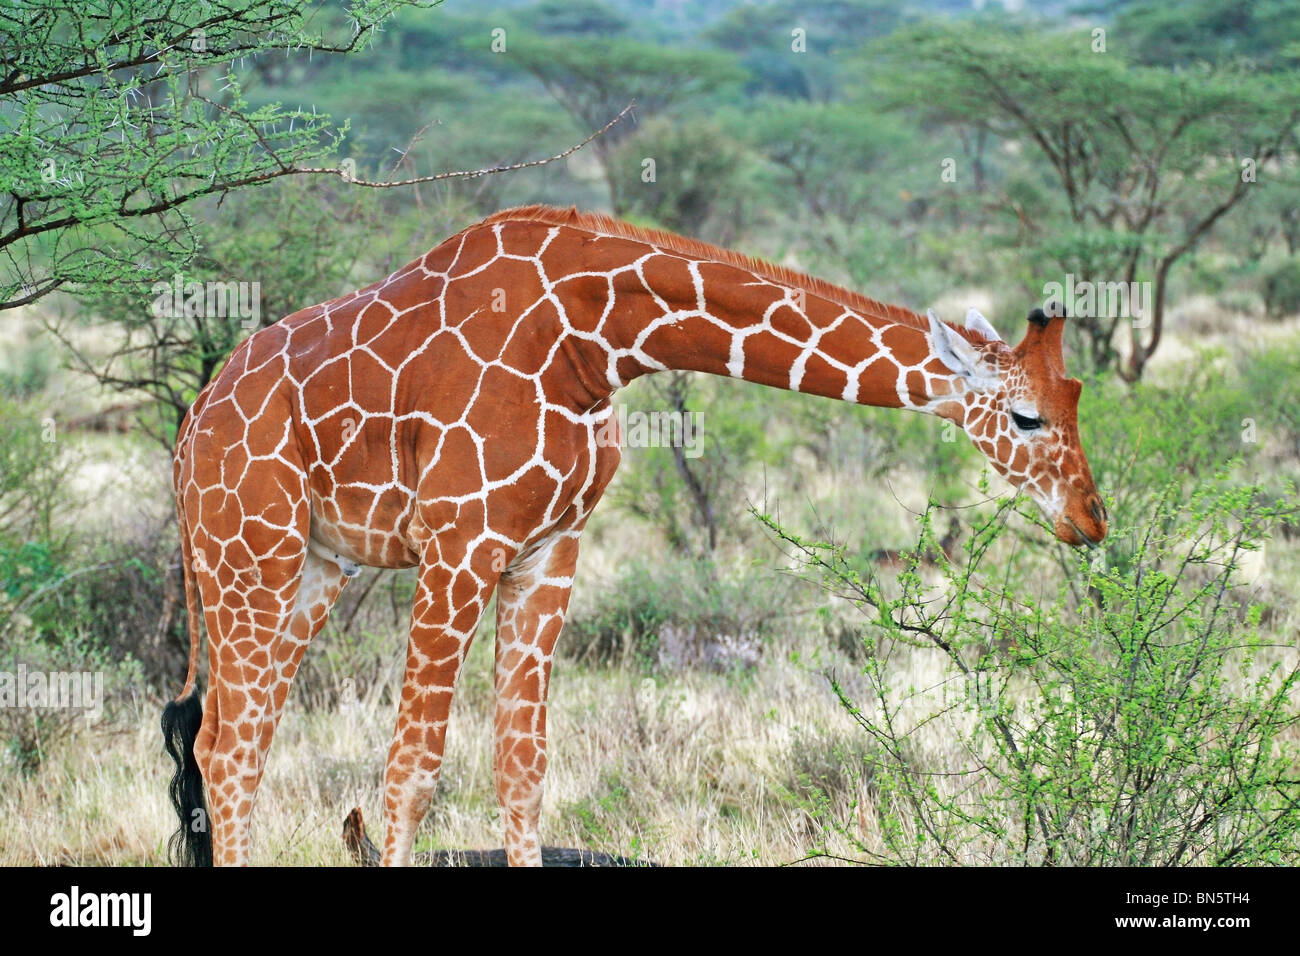 Reticulated Giraffe eating leaves. Picture taken in Samburu Game Reserve, Kenya, East Africa. Stock Photo